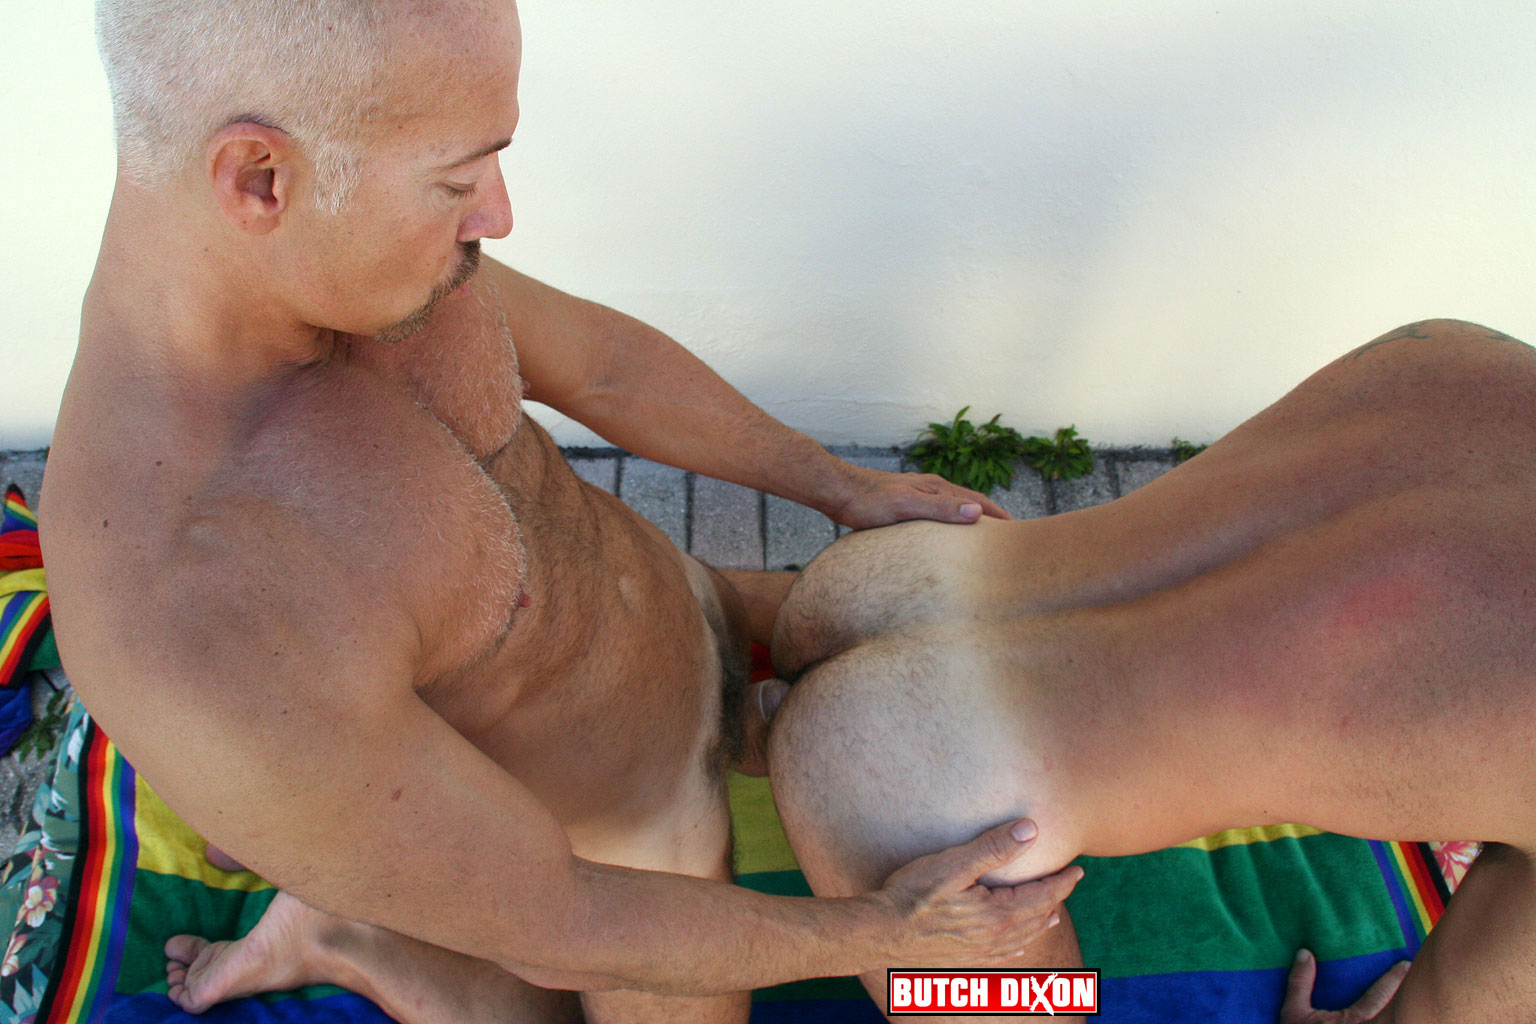 Butch Dixon Max Dunhill and Jason Proud Hairy Daddies Fucking With Big Cocks Amateur Gay Porn 20 Real Life Hairy Daddy Boyfriends Fucking With Their Big Cocks